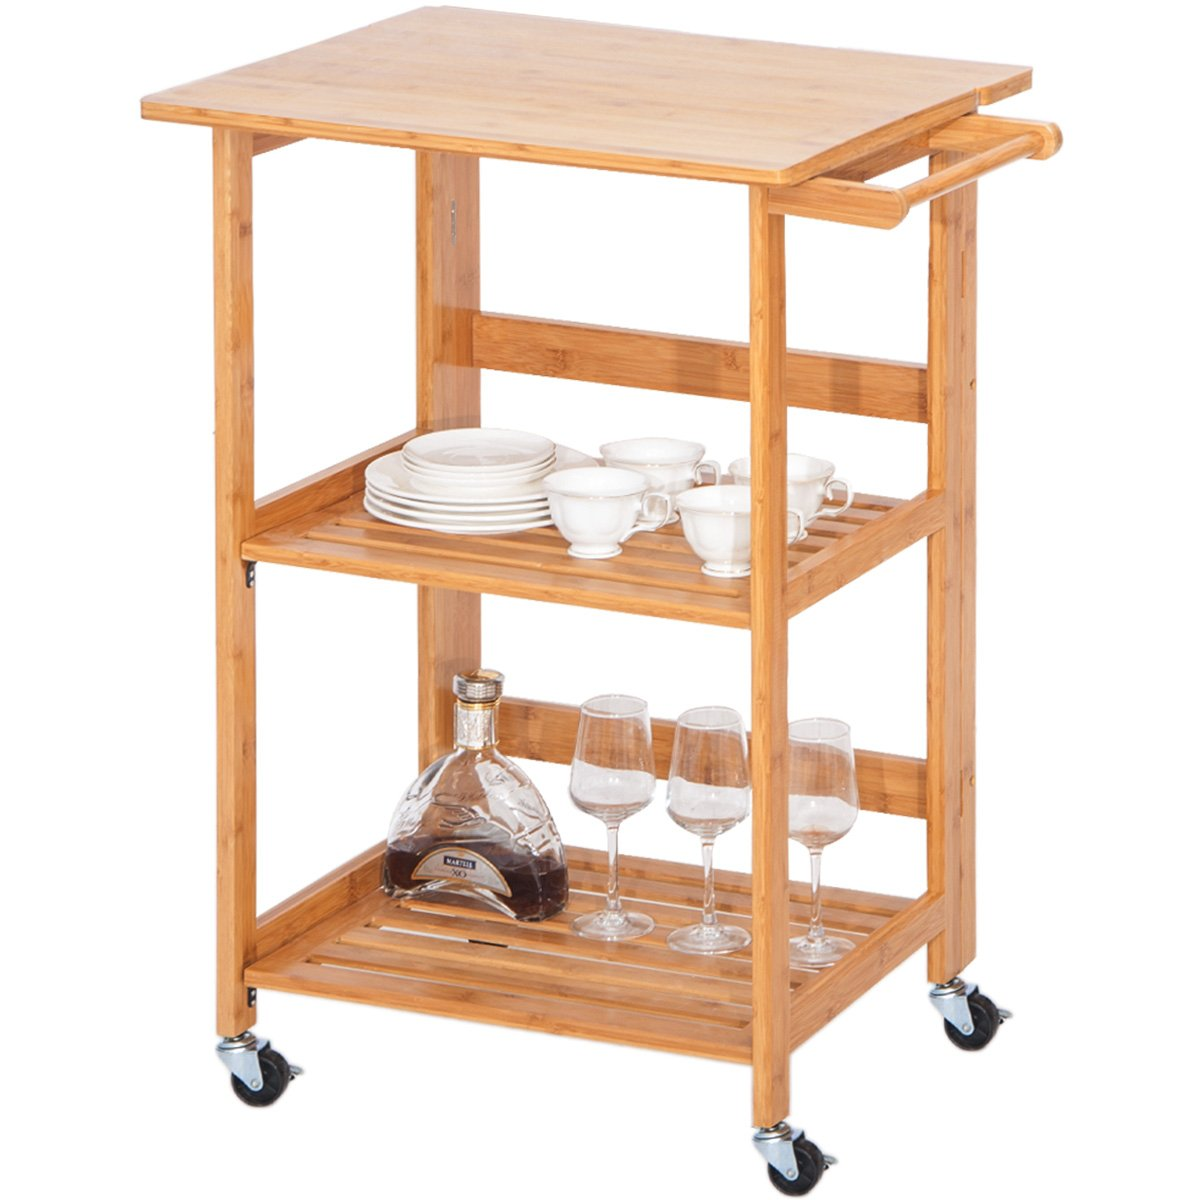 Harper&Bright Designs WF039320DAA Folding Home Kitchen Island Storage Cart with Wheels, Nature